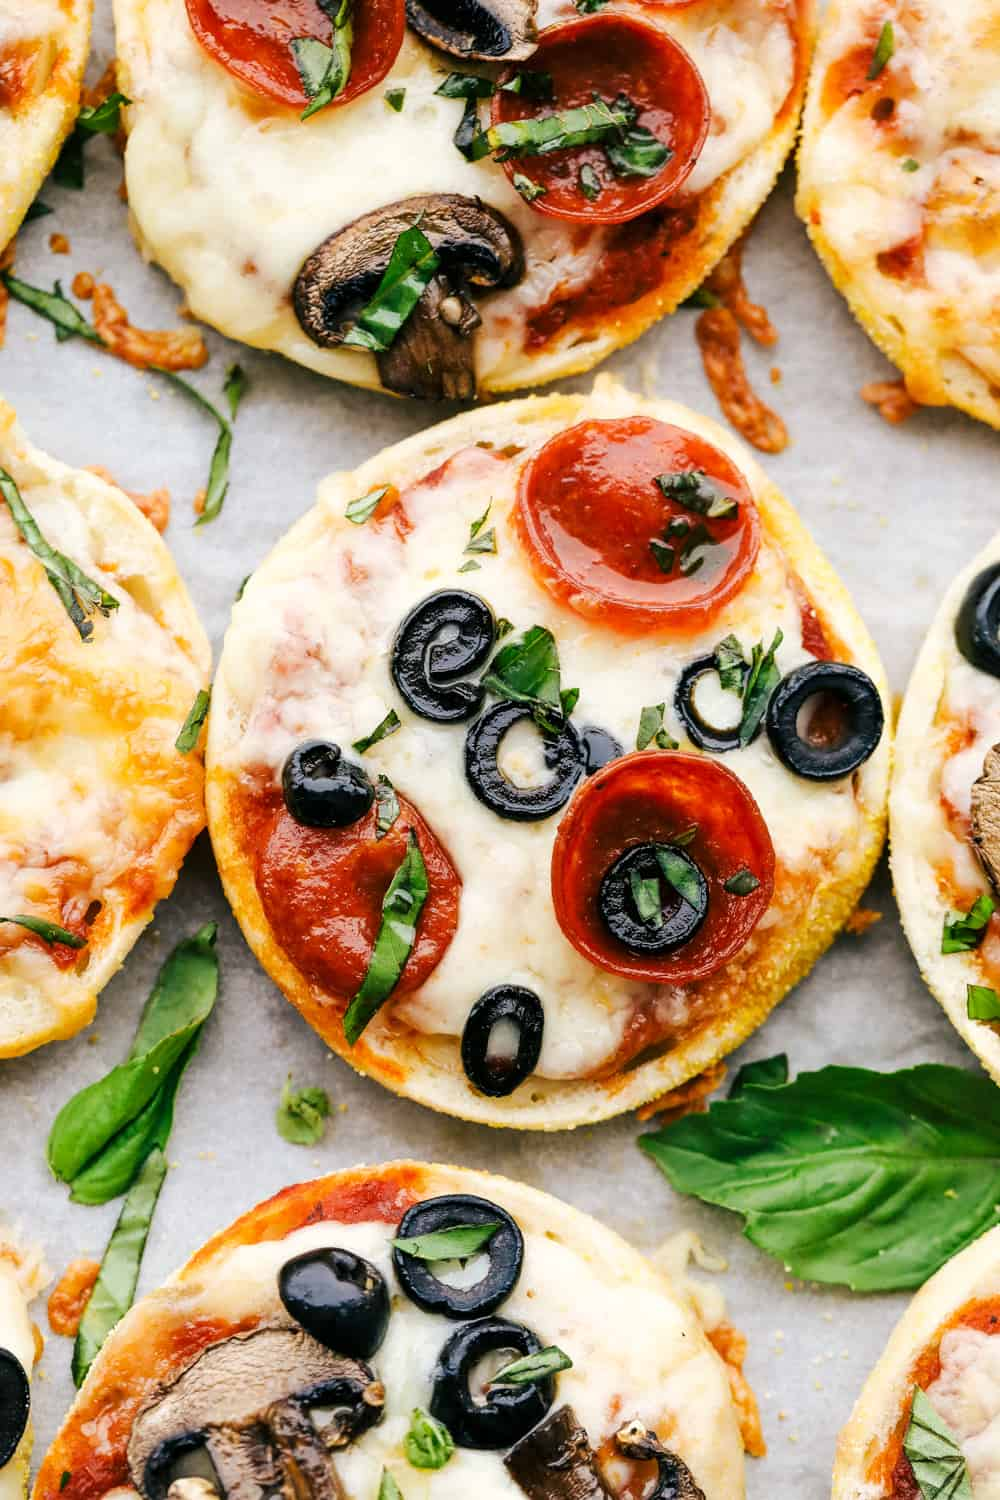 English muffin pizza topped with olives and pepperoni.